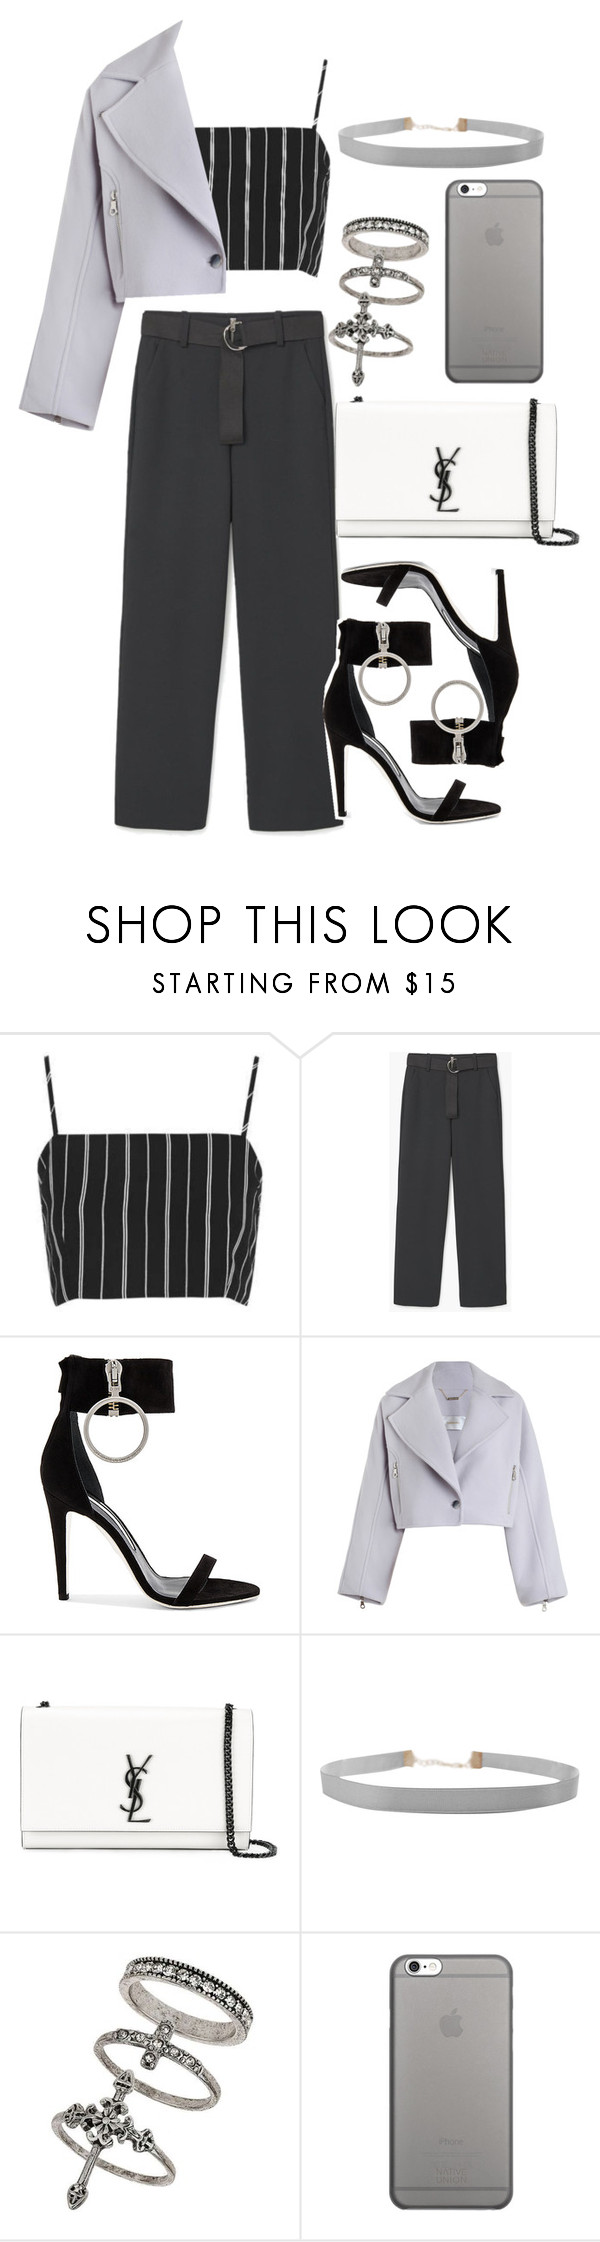 """""""Untitled #259"""" by ritapf ❤ liked on Polyvore featuring Topshop, MANGO, Off-White, Zimmermann, Yves Saint Laurent, Humble Chic, Miss Selfridge and Native Union"""